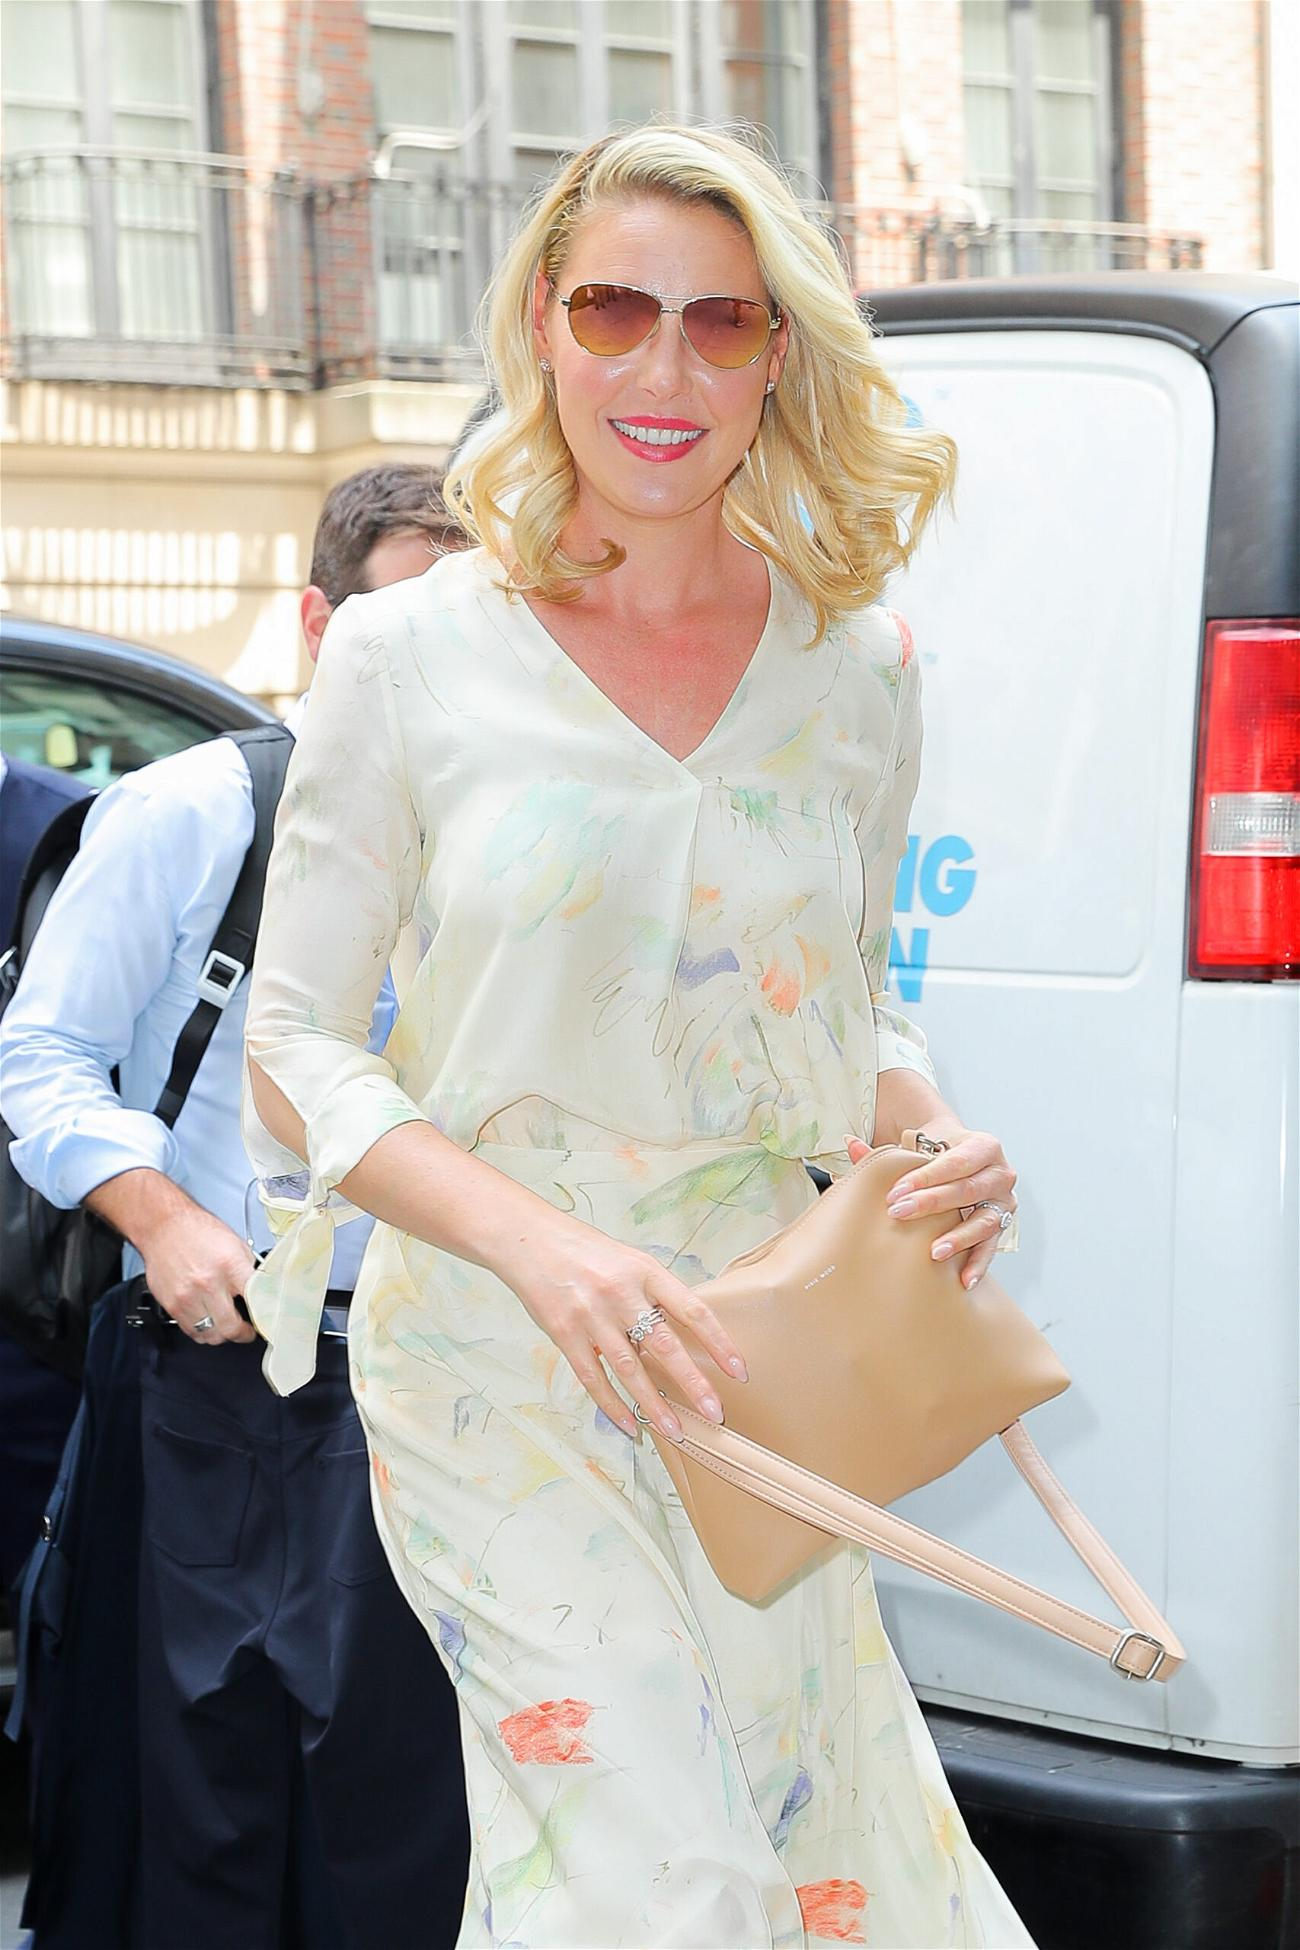 Katherine Heigl is all smiling while out and about in New York City